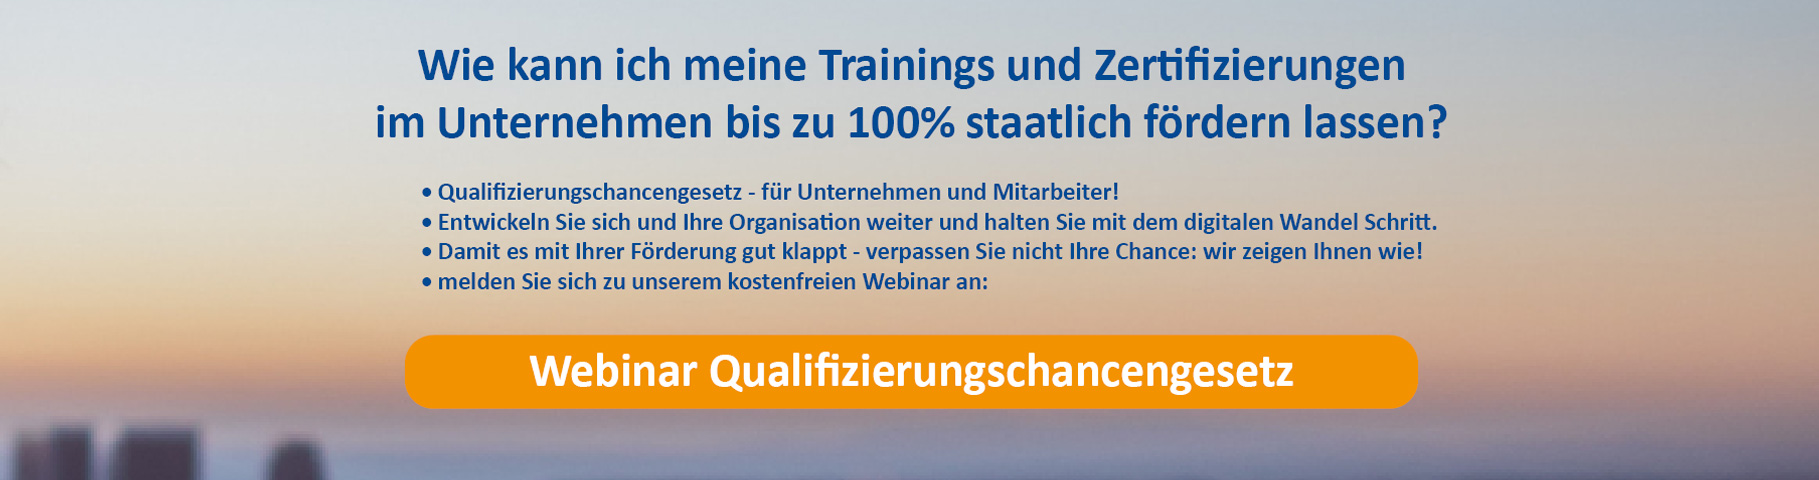 New Horizons WolkenStürmer Workshop Qualifizierungschancengesetz